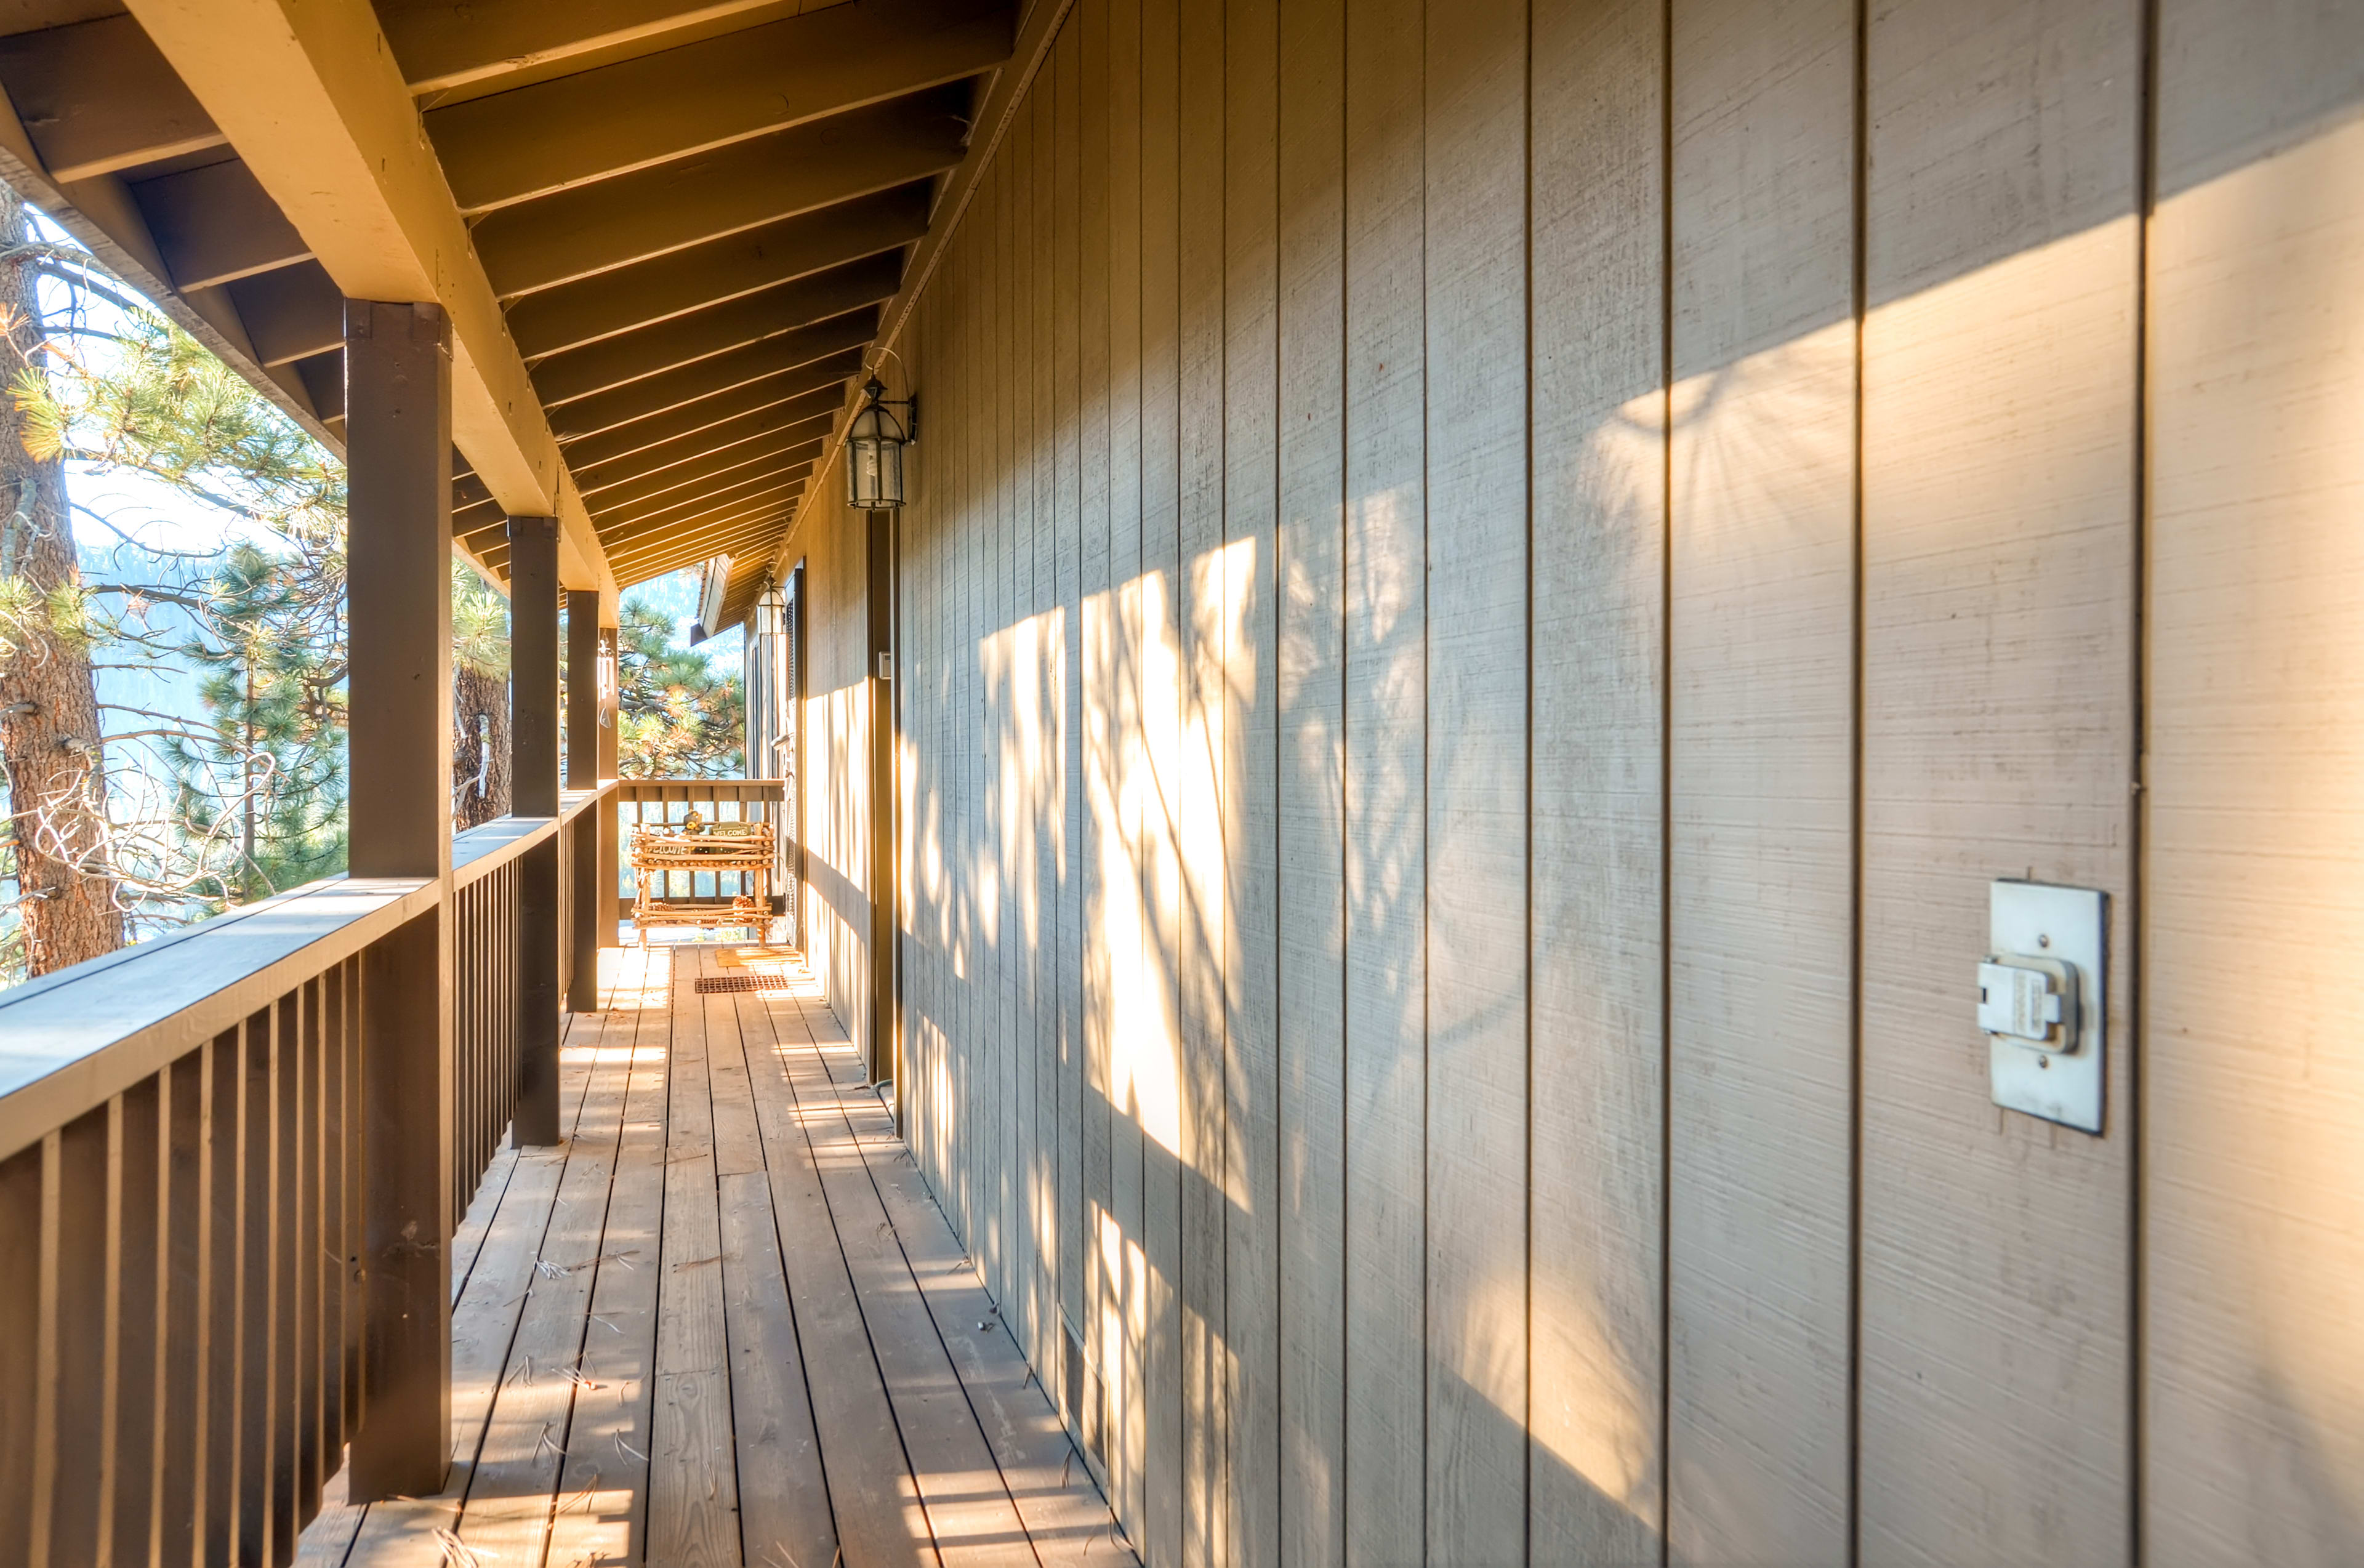 Enjoy your surroundings from the home's covered deck!